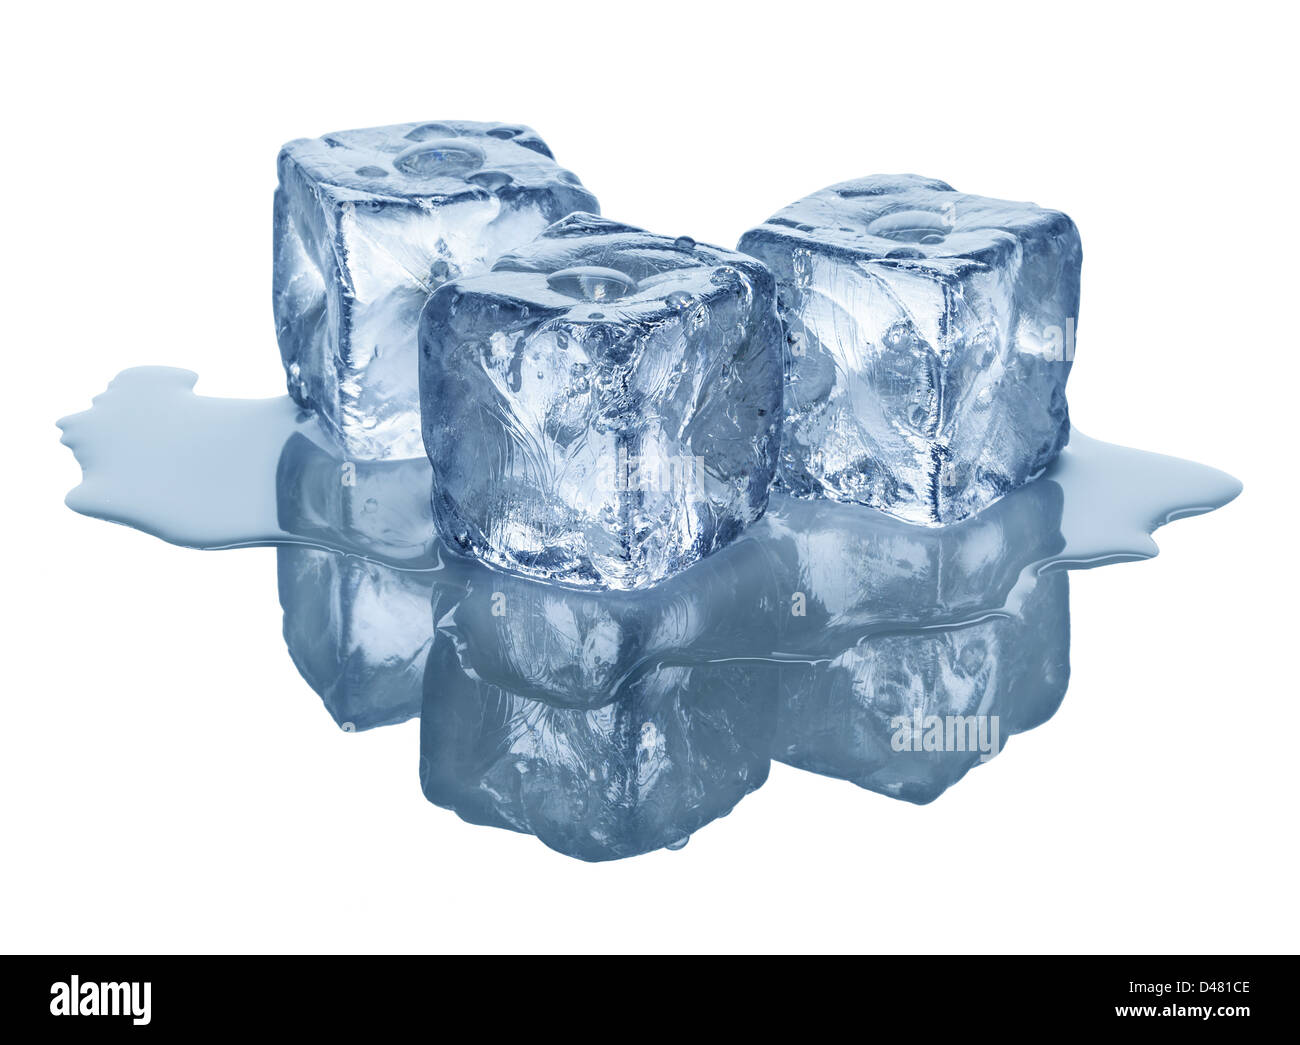 ice cubes in front of white background - Stock Image